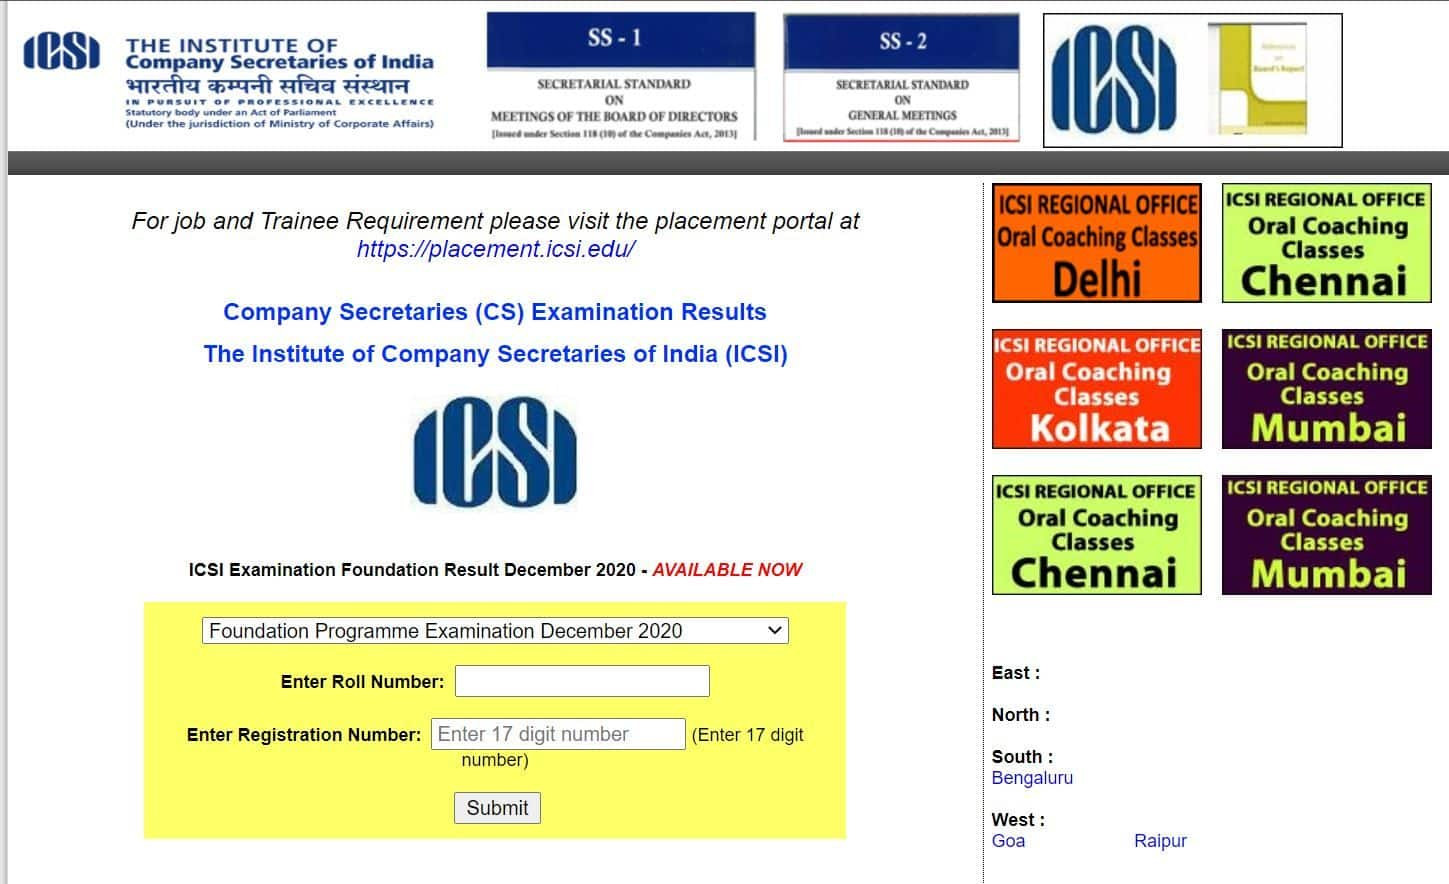 LIVE NOW: ICSI CSEET Result 2021 Declared, Download CSEET 2021 Scorecard at icsi.edu | Check Details Here